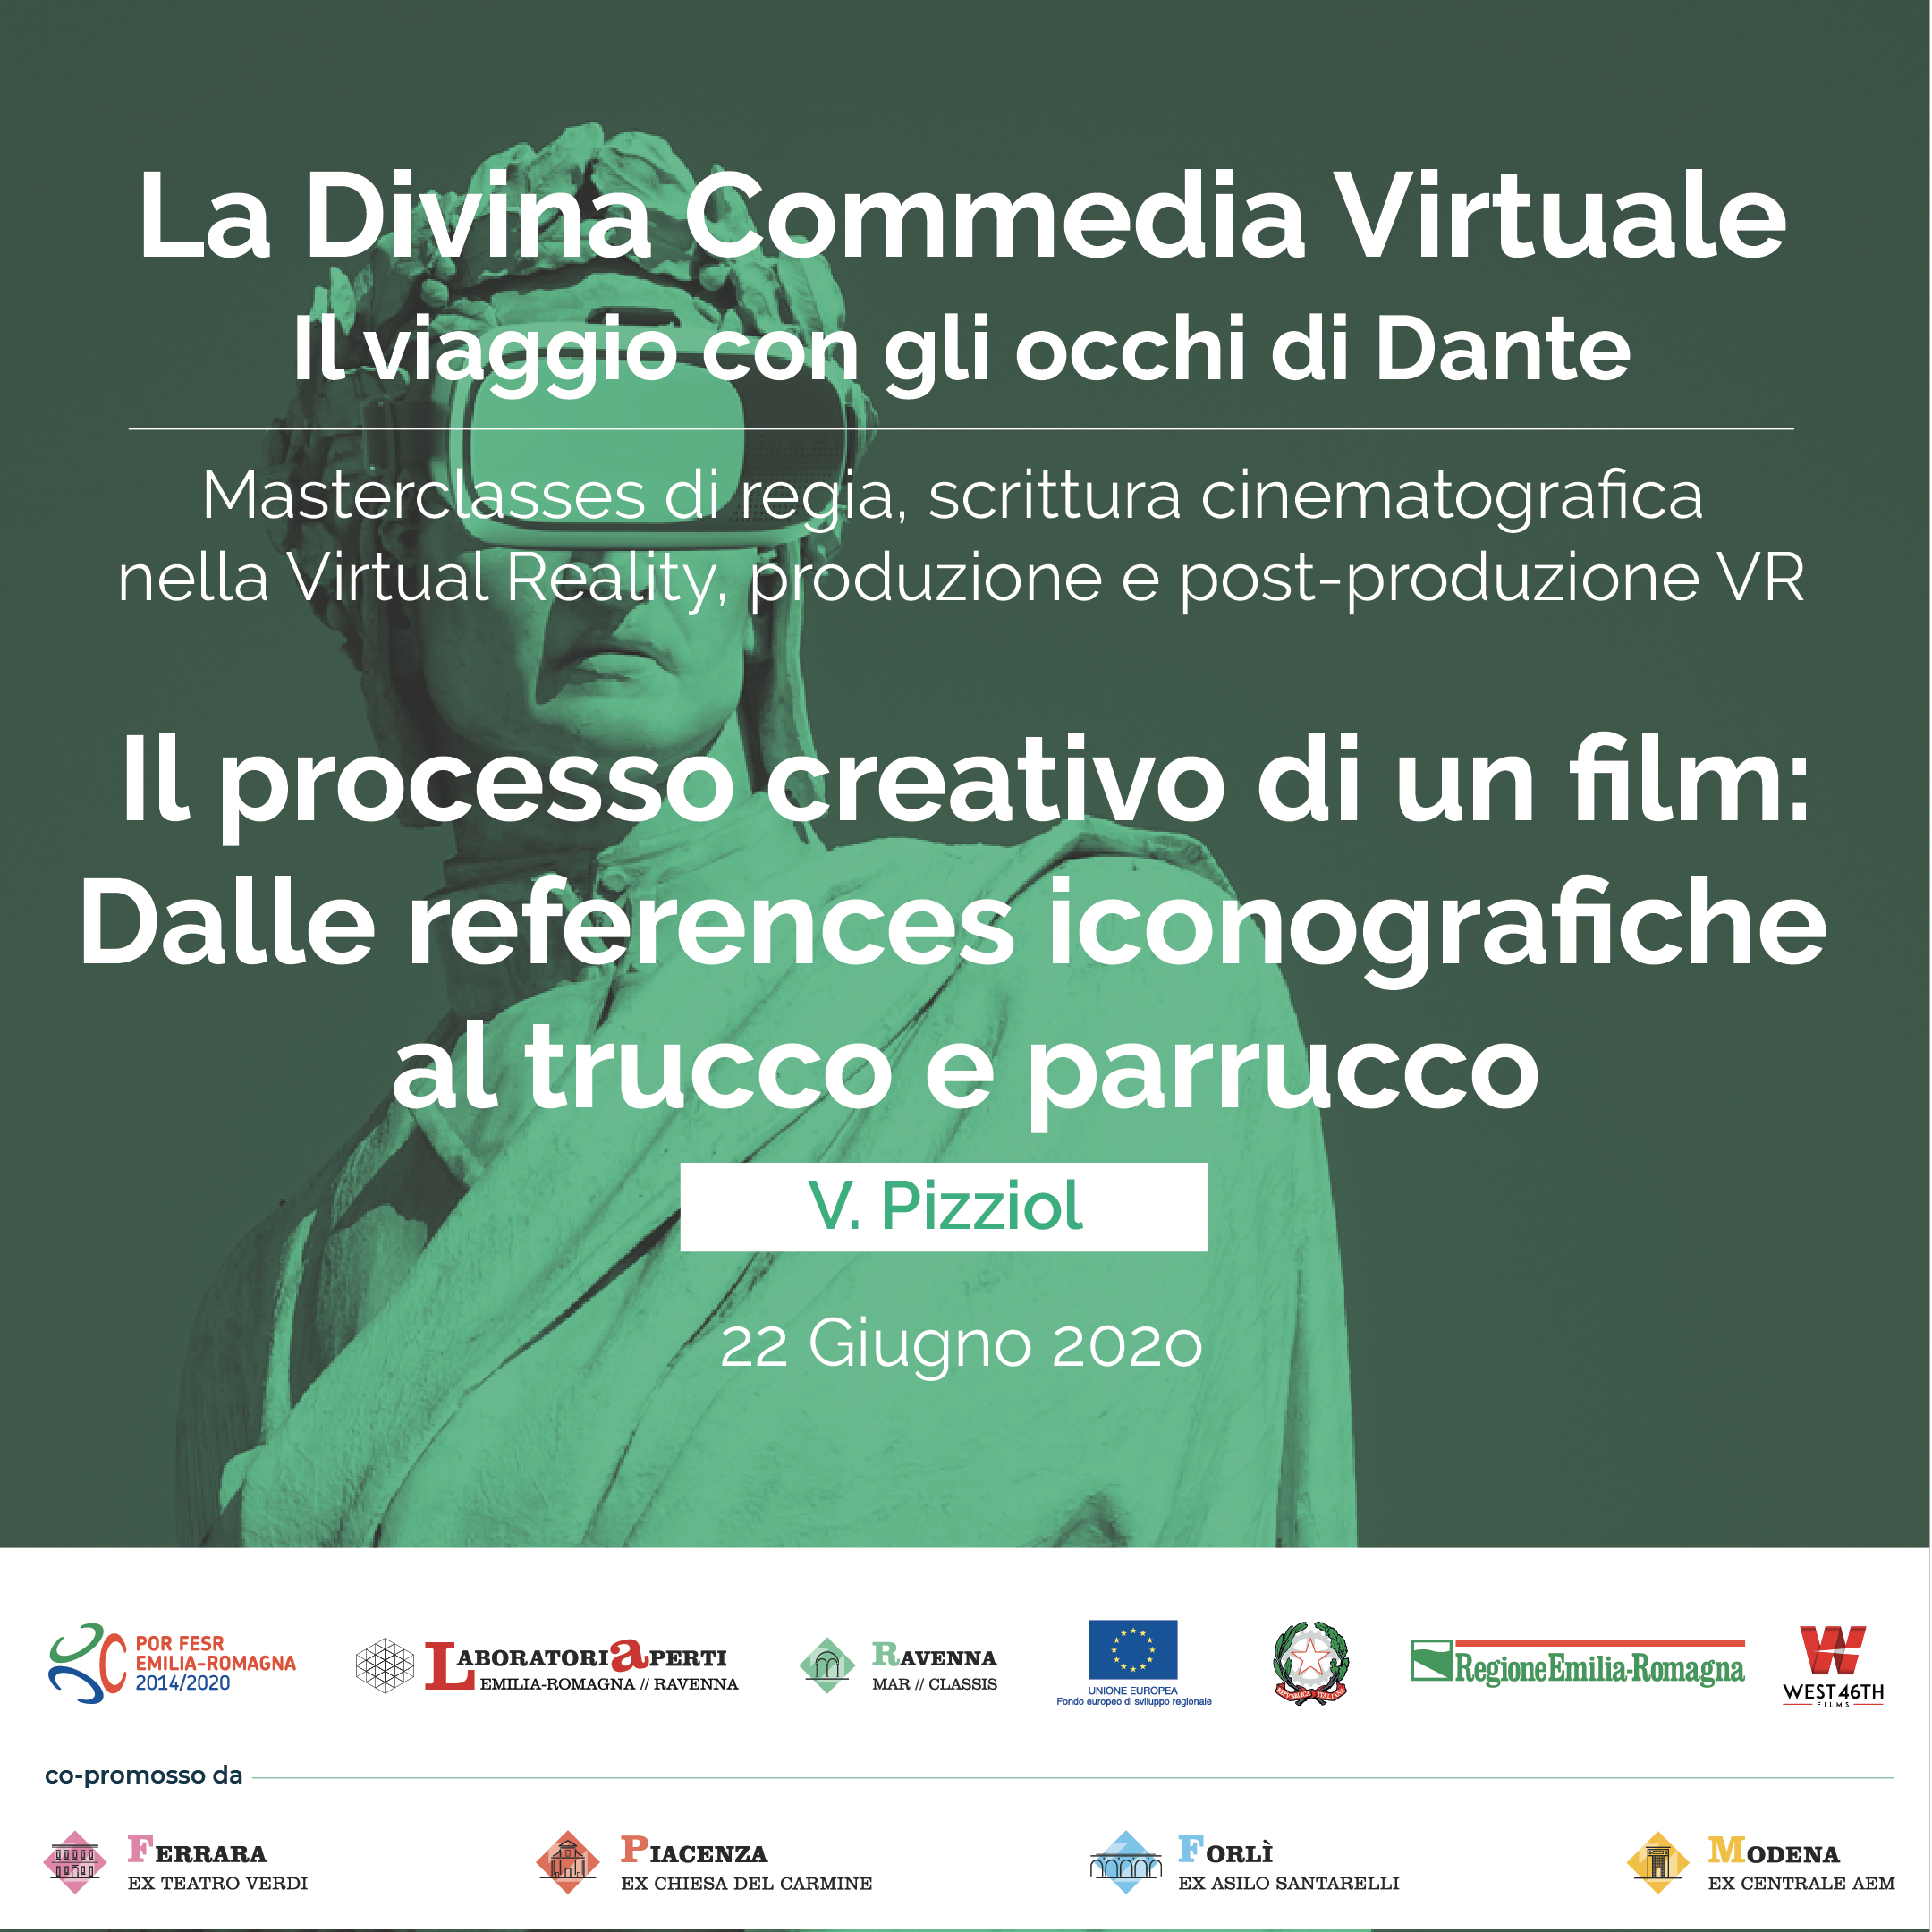 Divina Commedia Virtuale